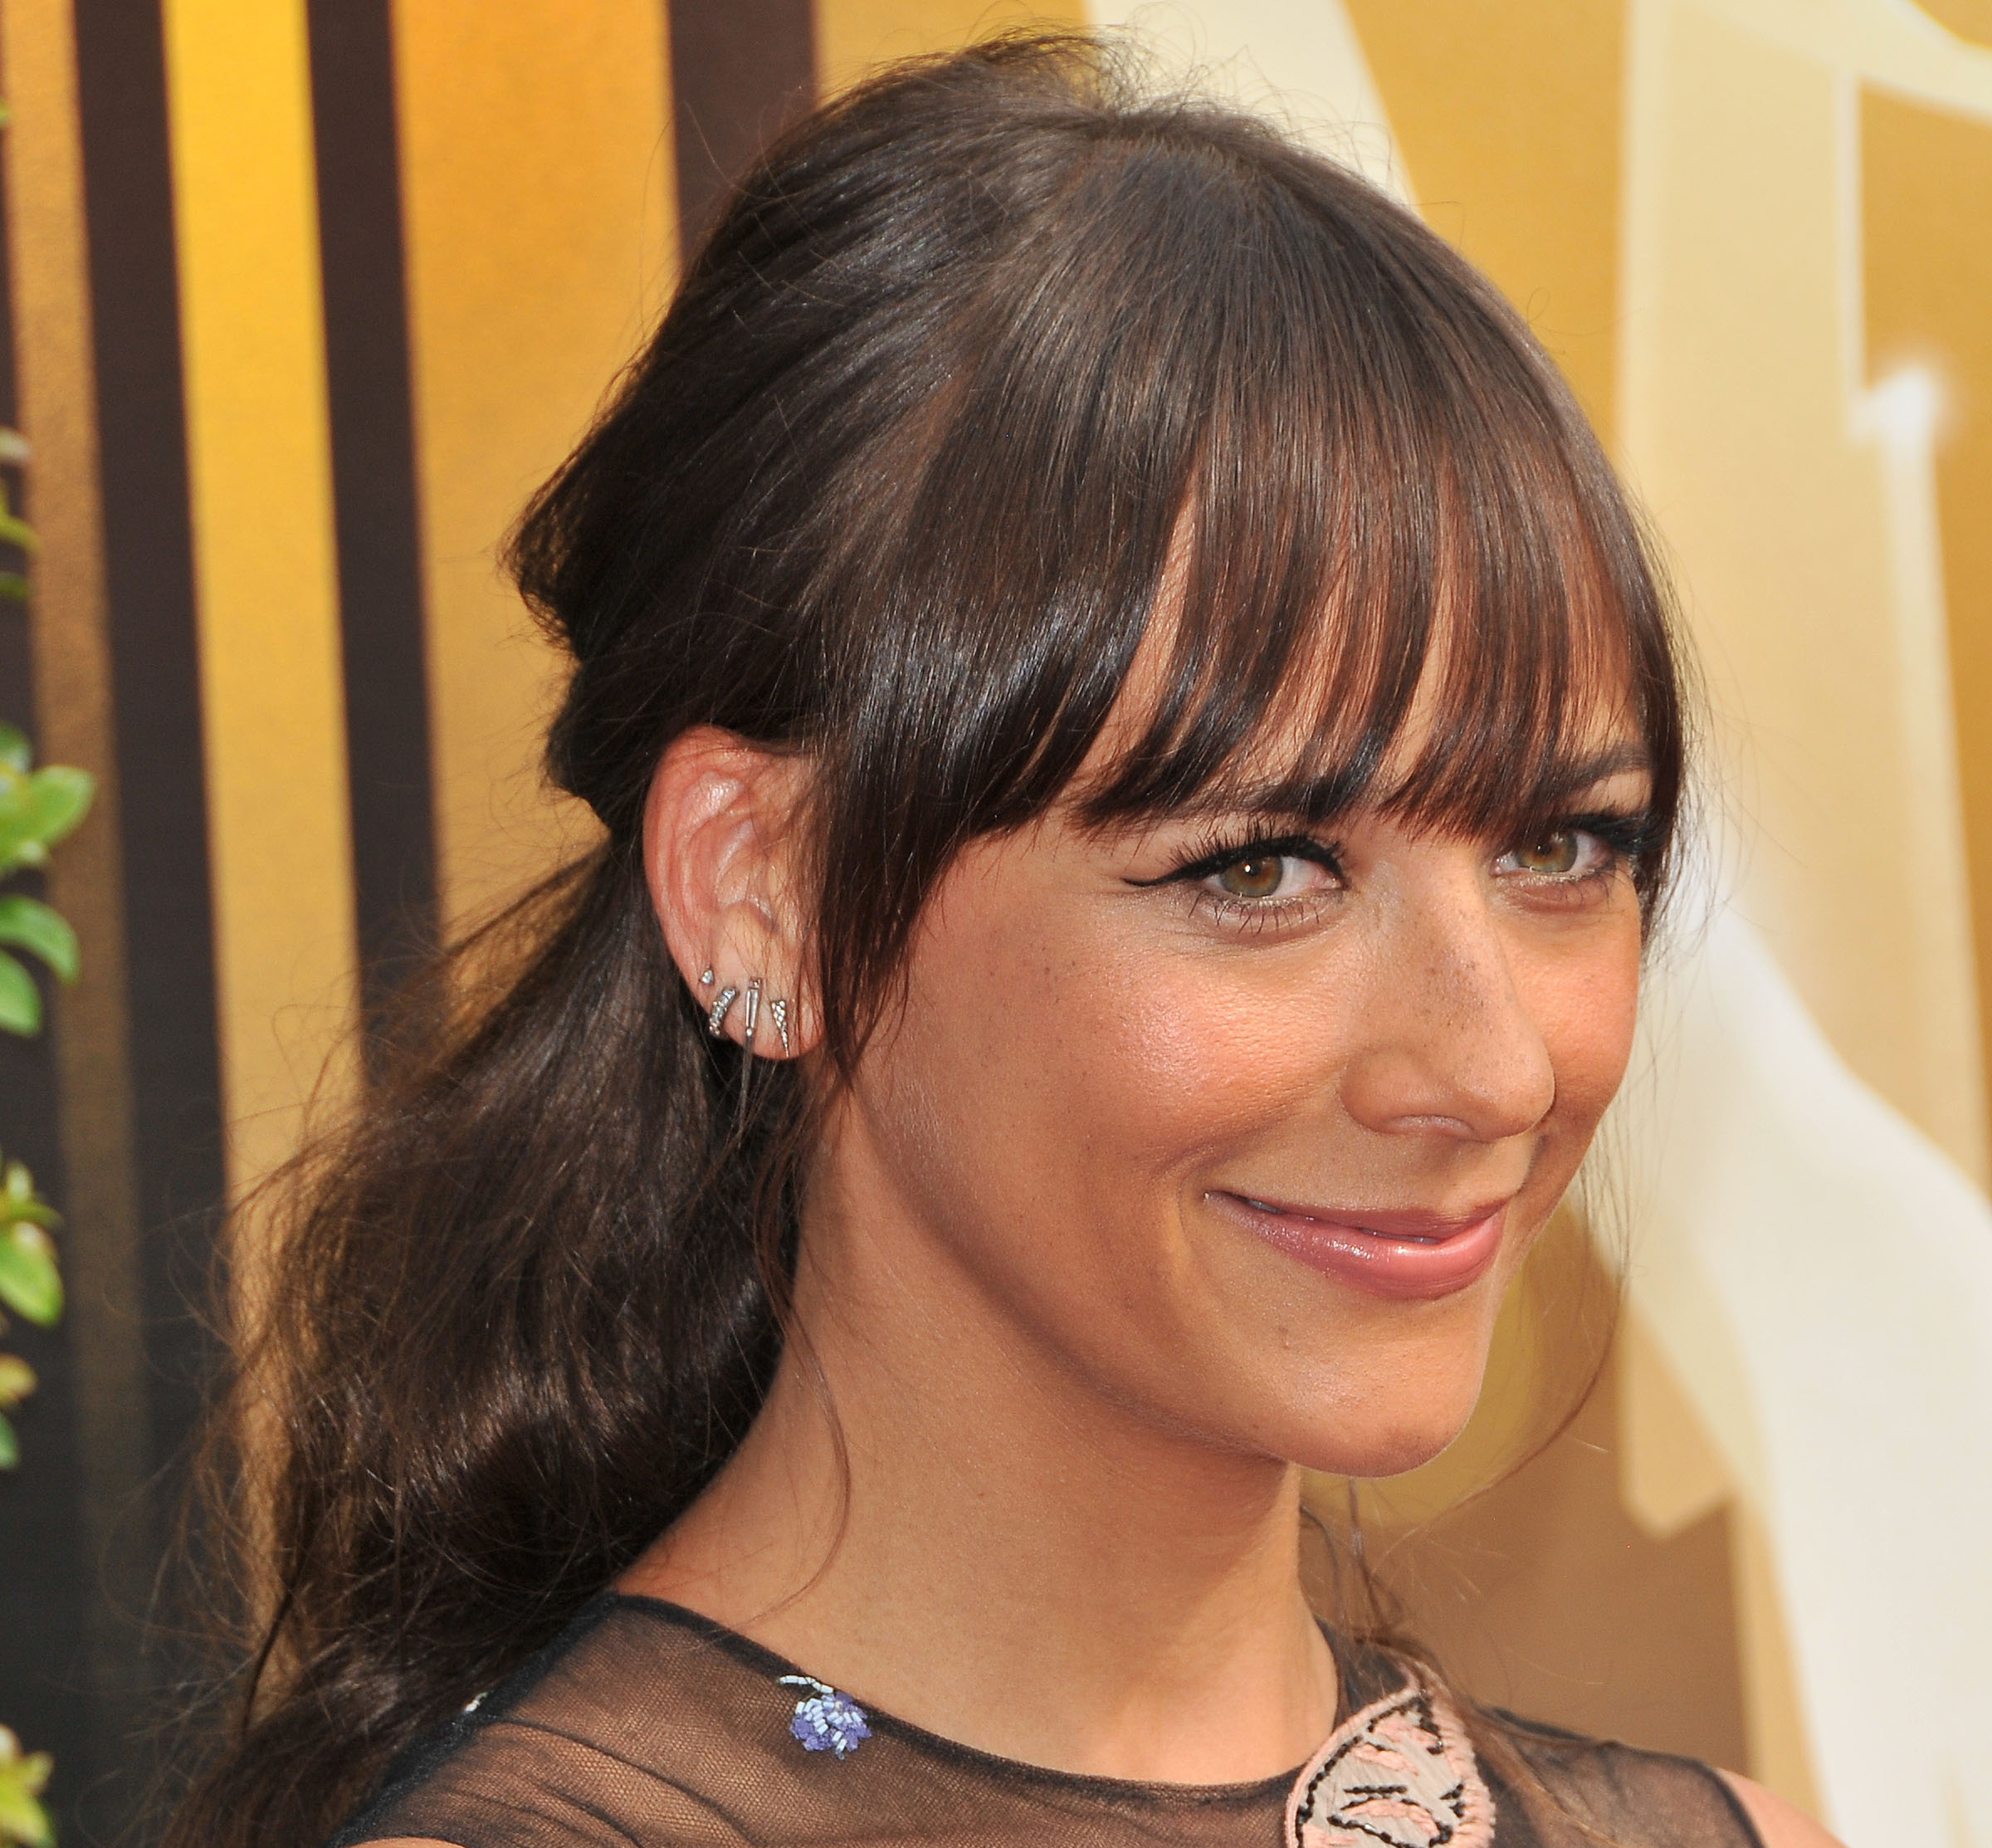 rashida-jones-bird-dress.jpg